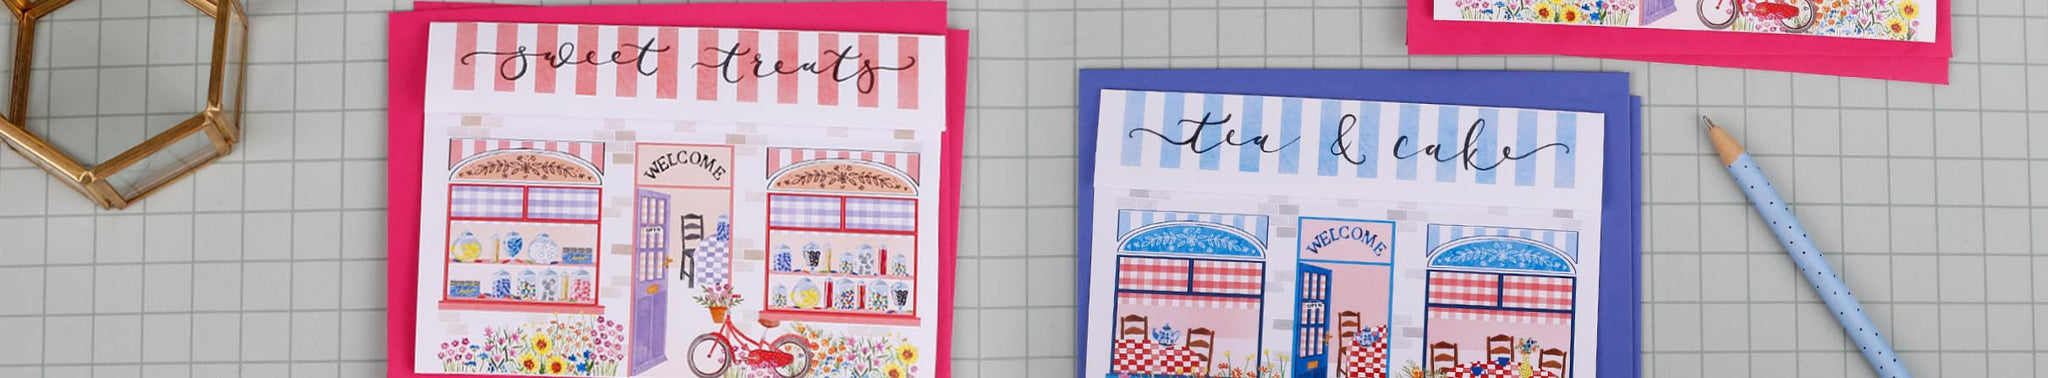 a5 writing paper banner